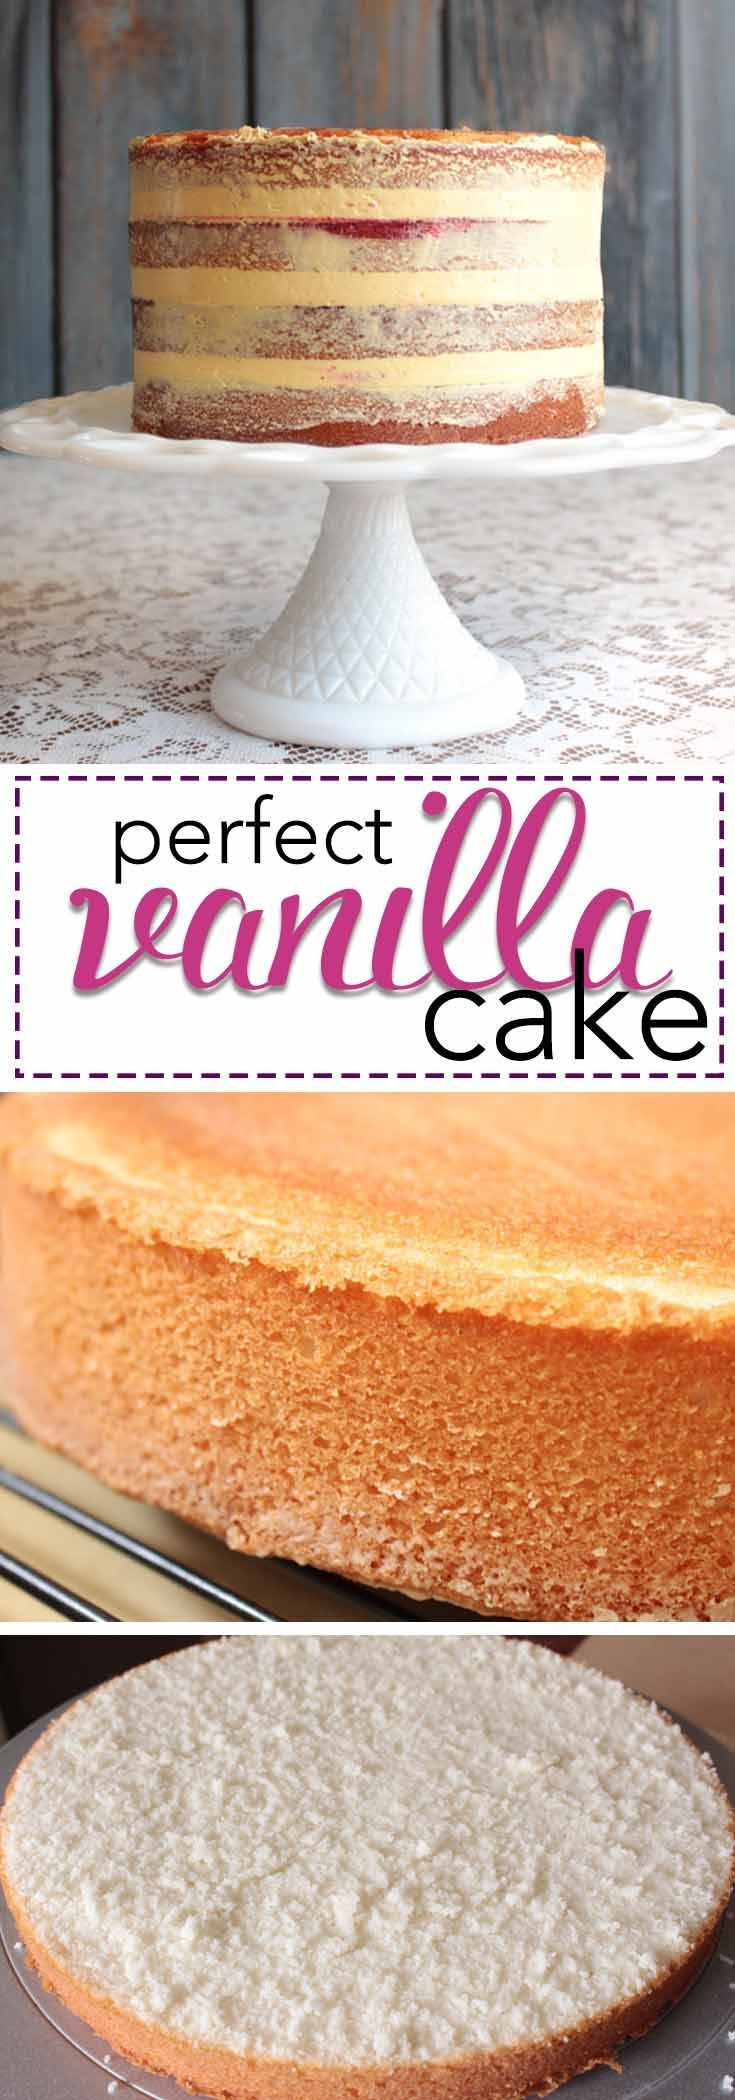 The Perfect Vanilla Cake Recipe. This amazing vanilla cake bakes perfectly every…